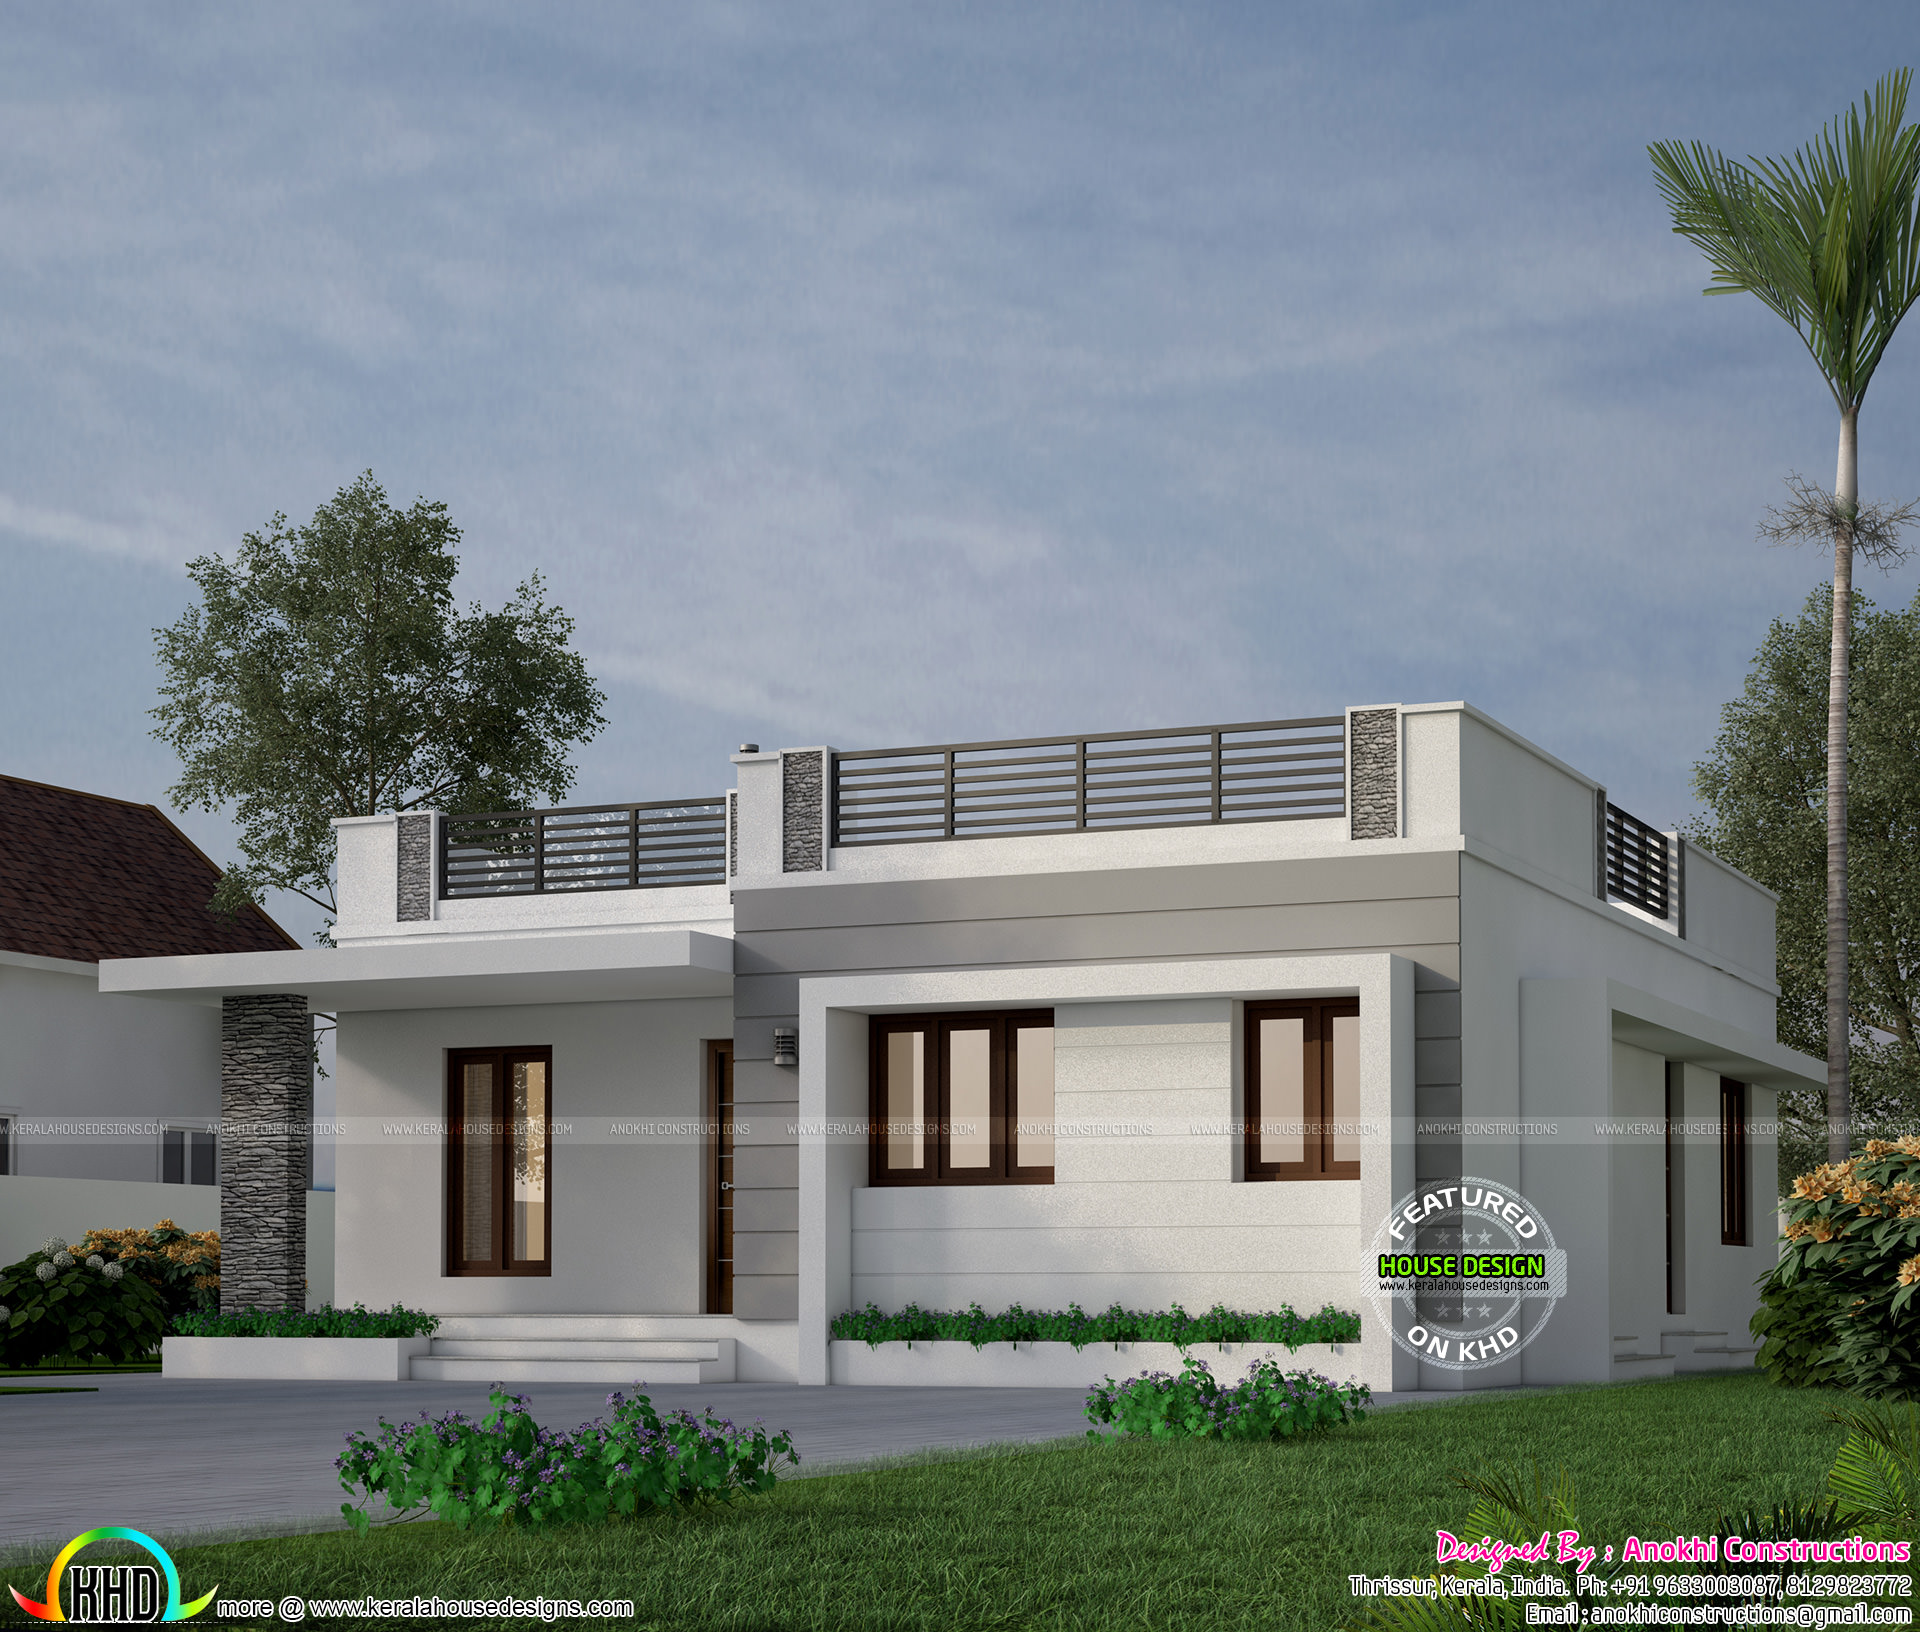 28 10 lakhs budget house plan 10 lakhs budget house plans in kerala arts april 2015 Home design and budget